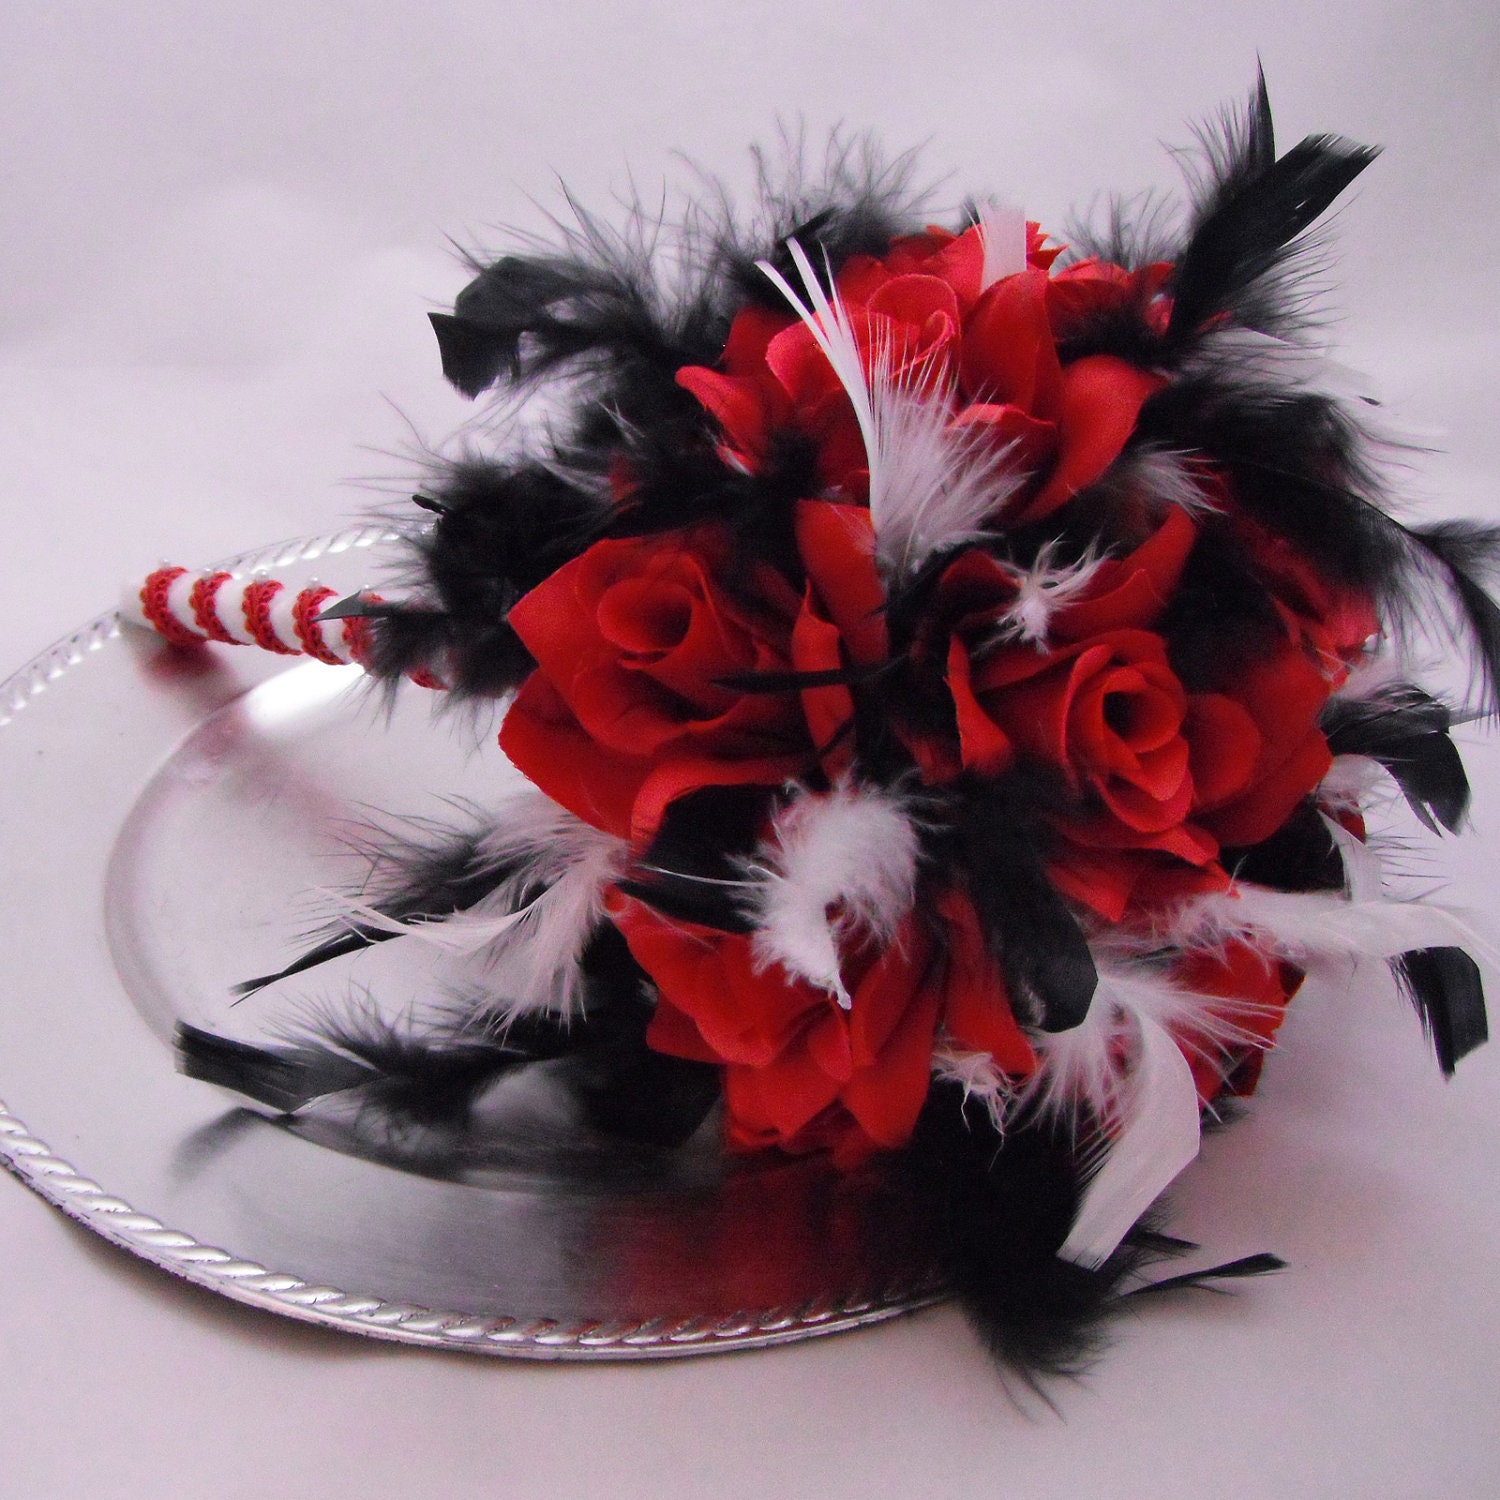 Bridal Wedding Bouquet 12 Roses Red Roses By DarkRoseTreasures